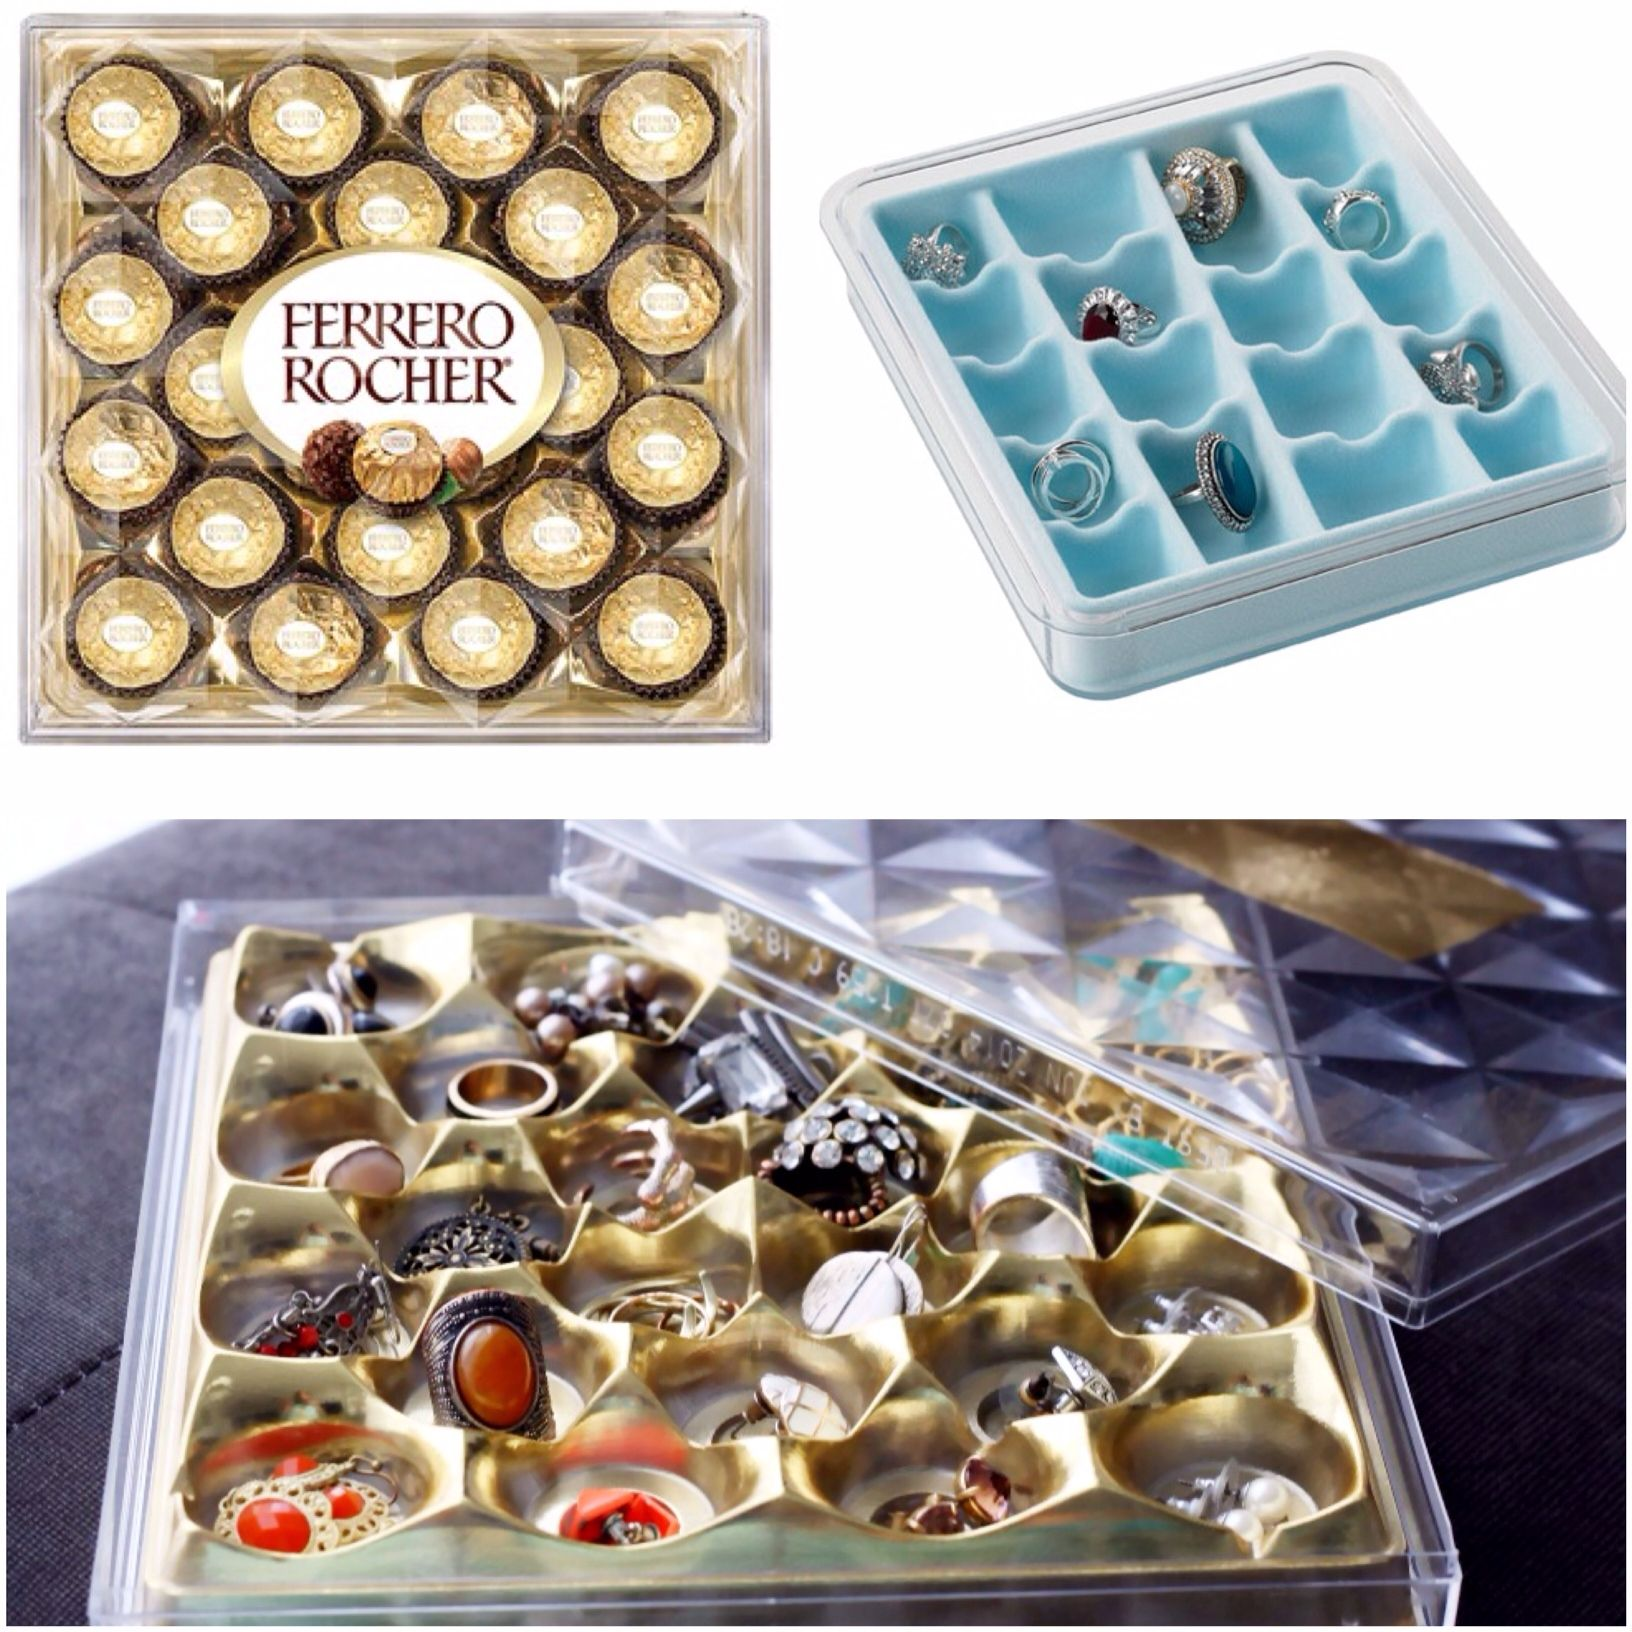 Ferrero Rocher Box Diy